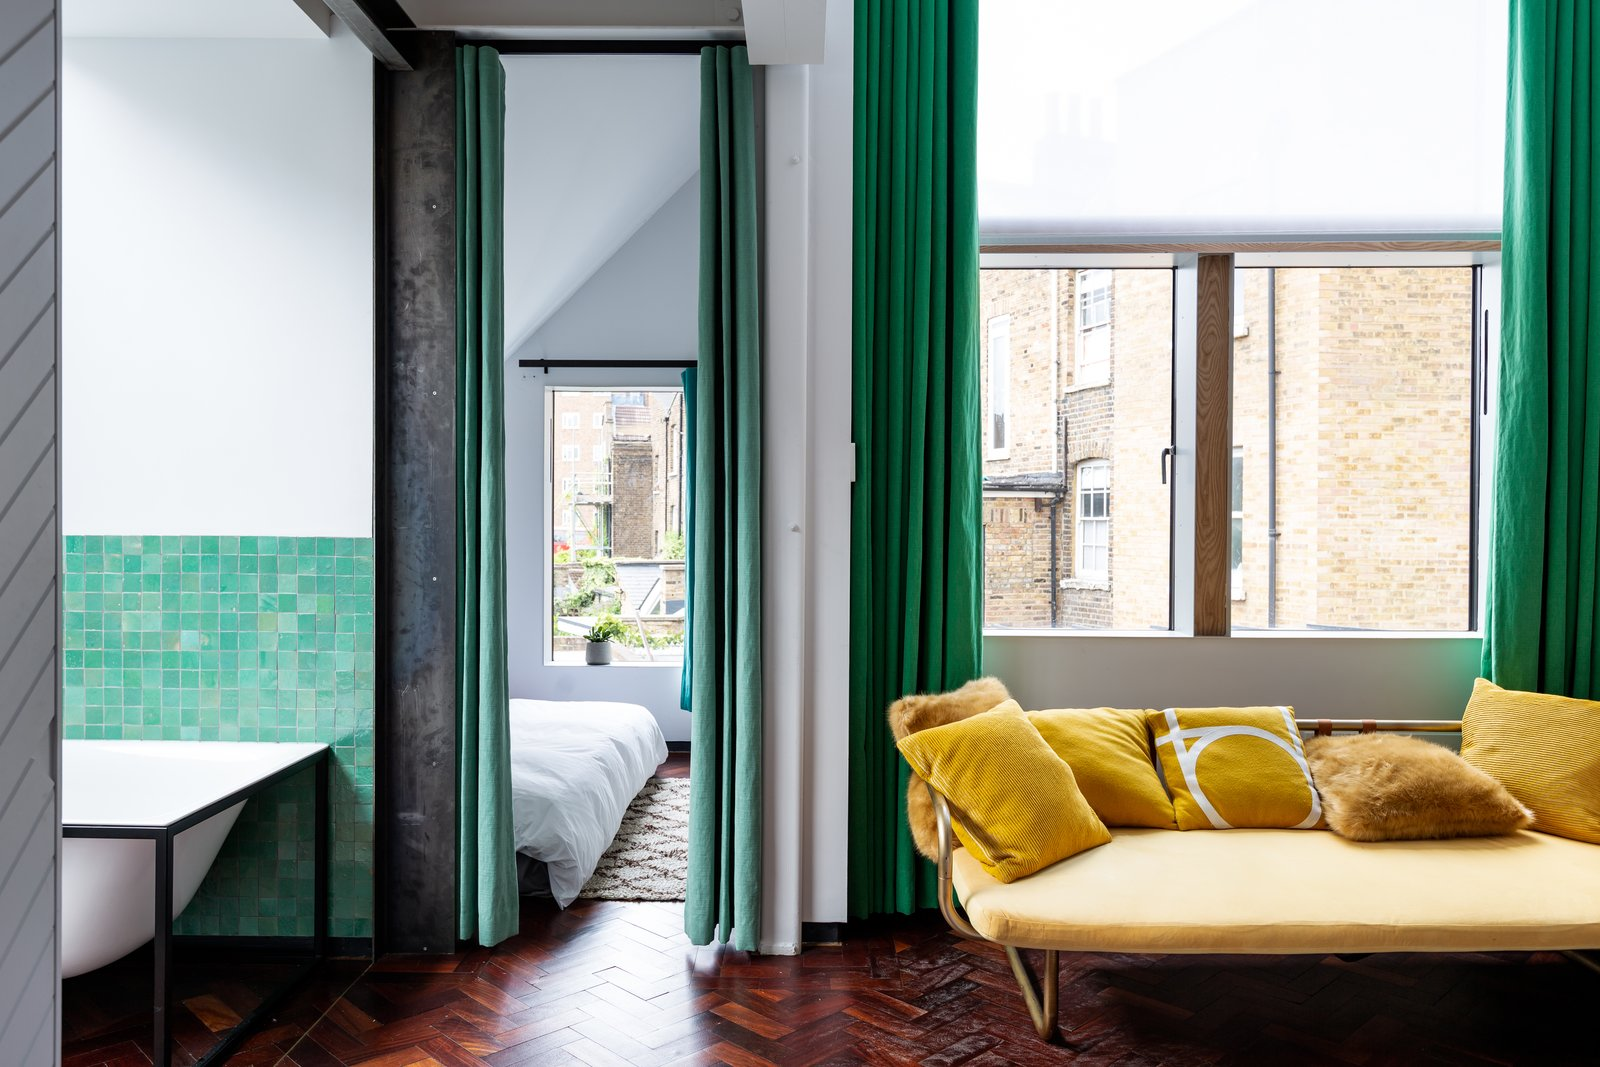 An Architect Couple Play With Texture in Their Handcrafted London Home